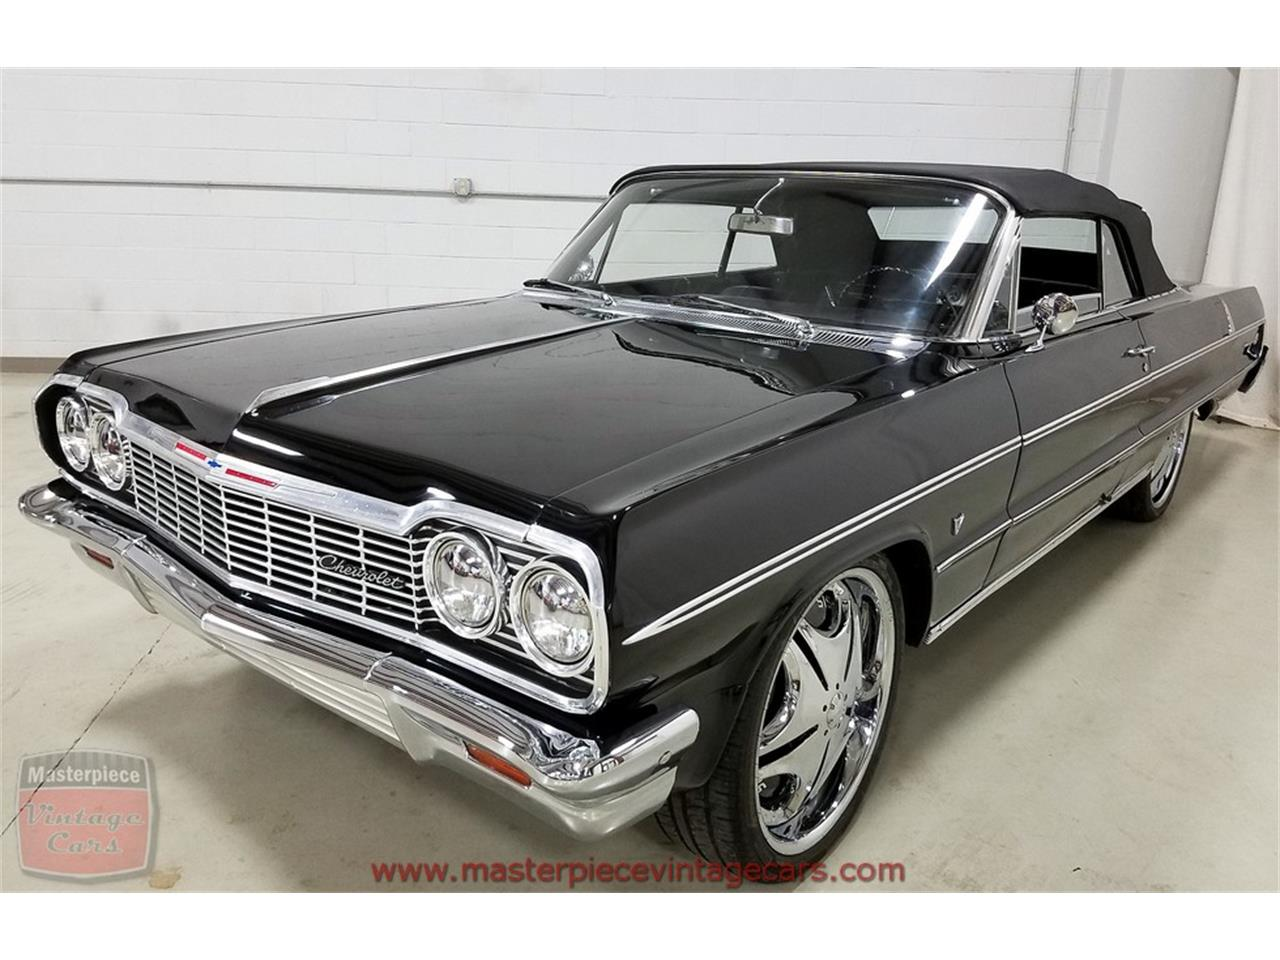 Large Picture of 1964 Impala located in Indiana - $44,900.00 Offered by Masterpiece Vintage Cars - LBXB